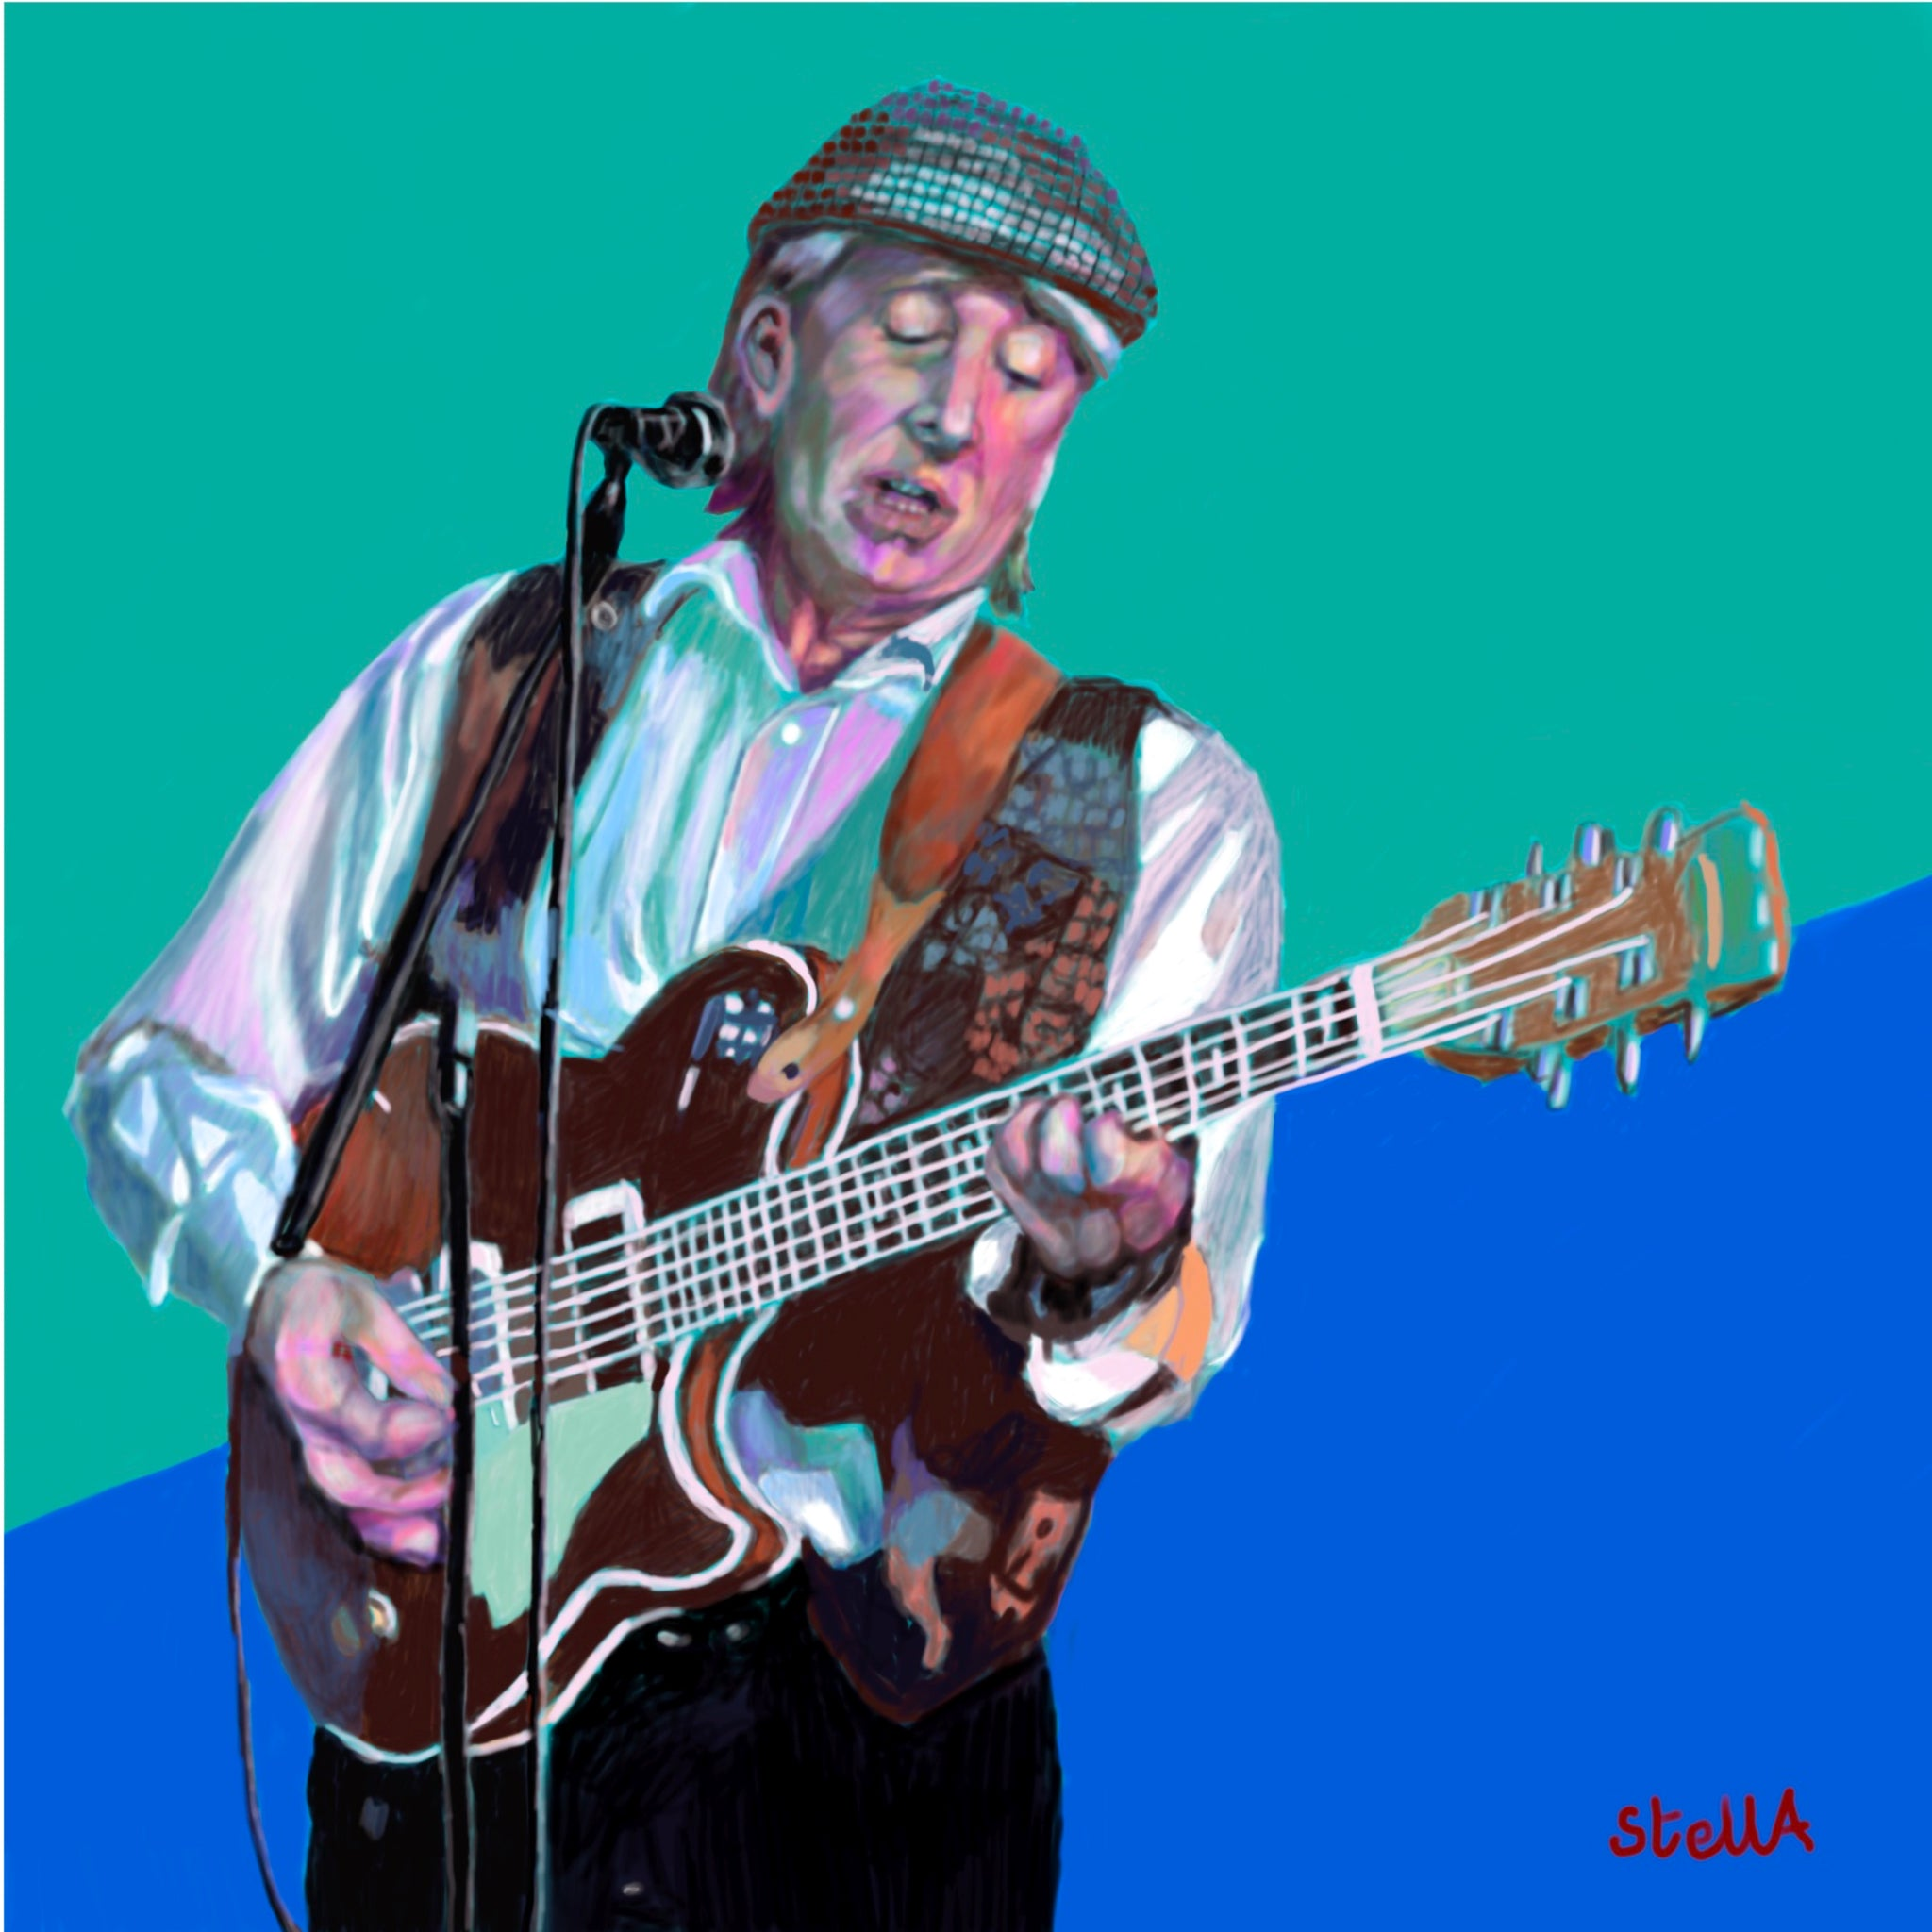 Digital painting of Don Craine of the Downliners Sect by British figurative artist Stella Tooth